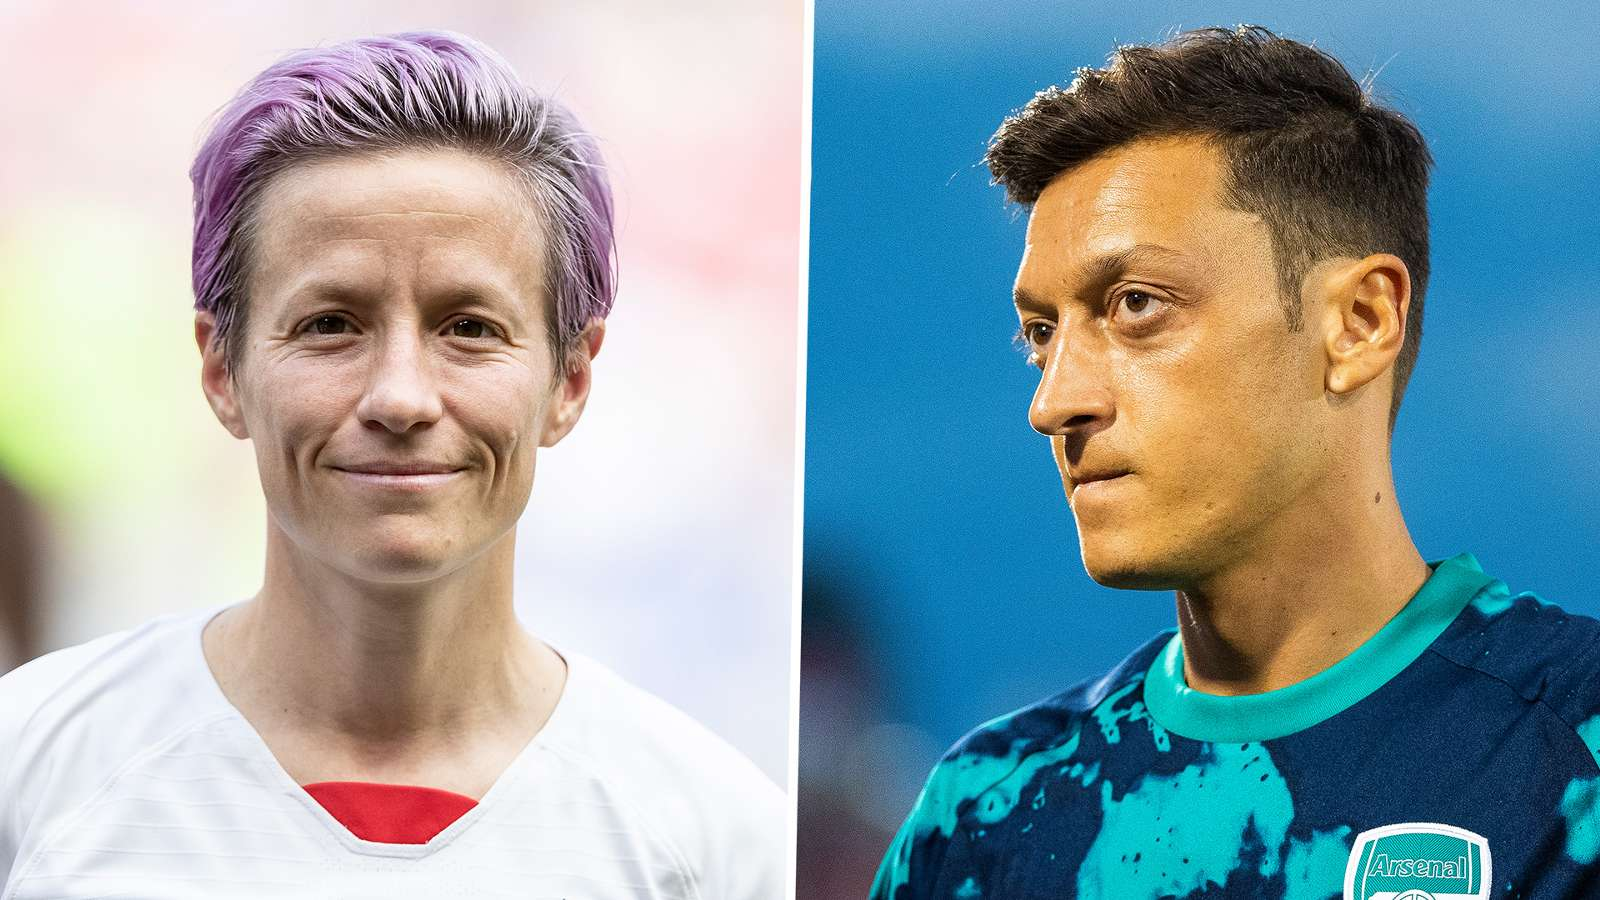 Aubameyang jokes Ozil looks like Megan Rapinoe as he reveals his new bleach blonde hairstyle